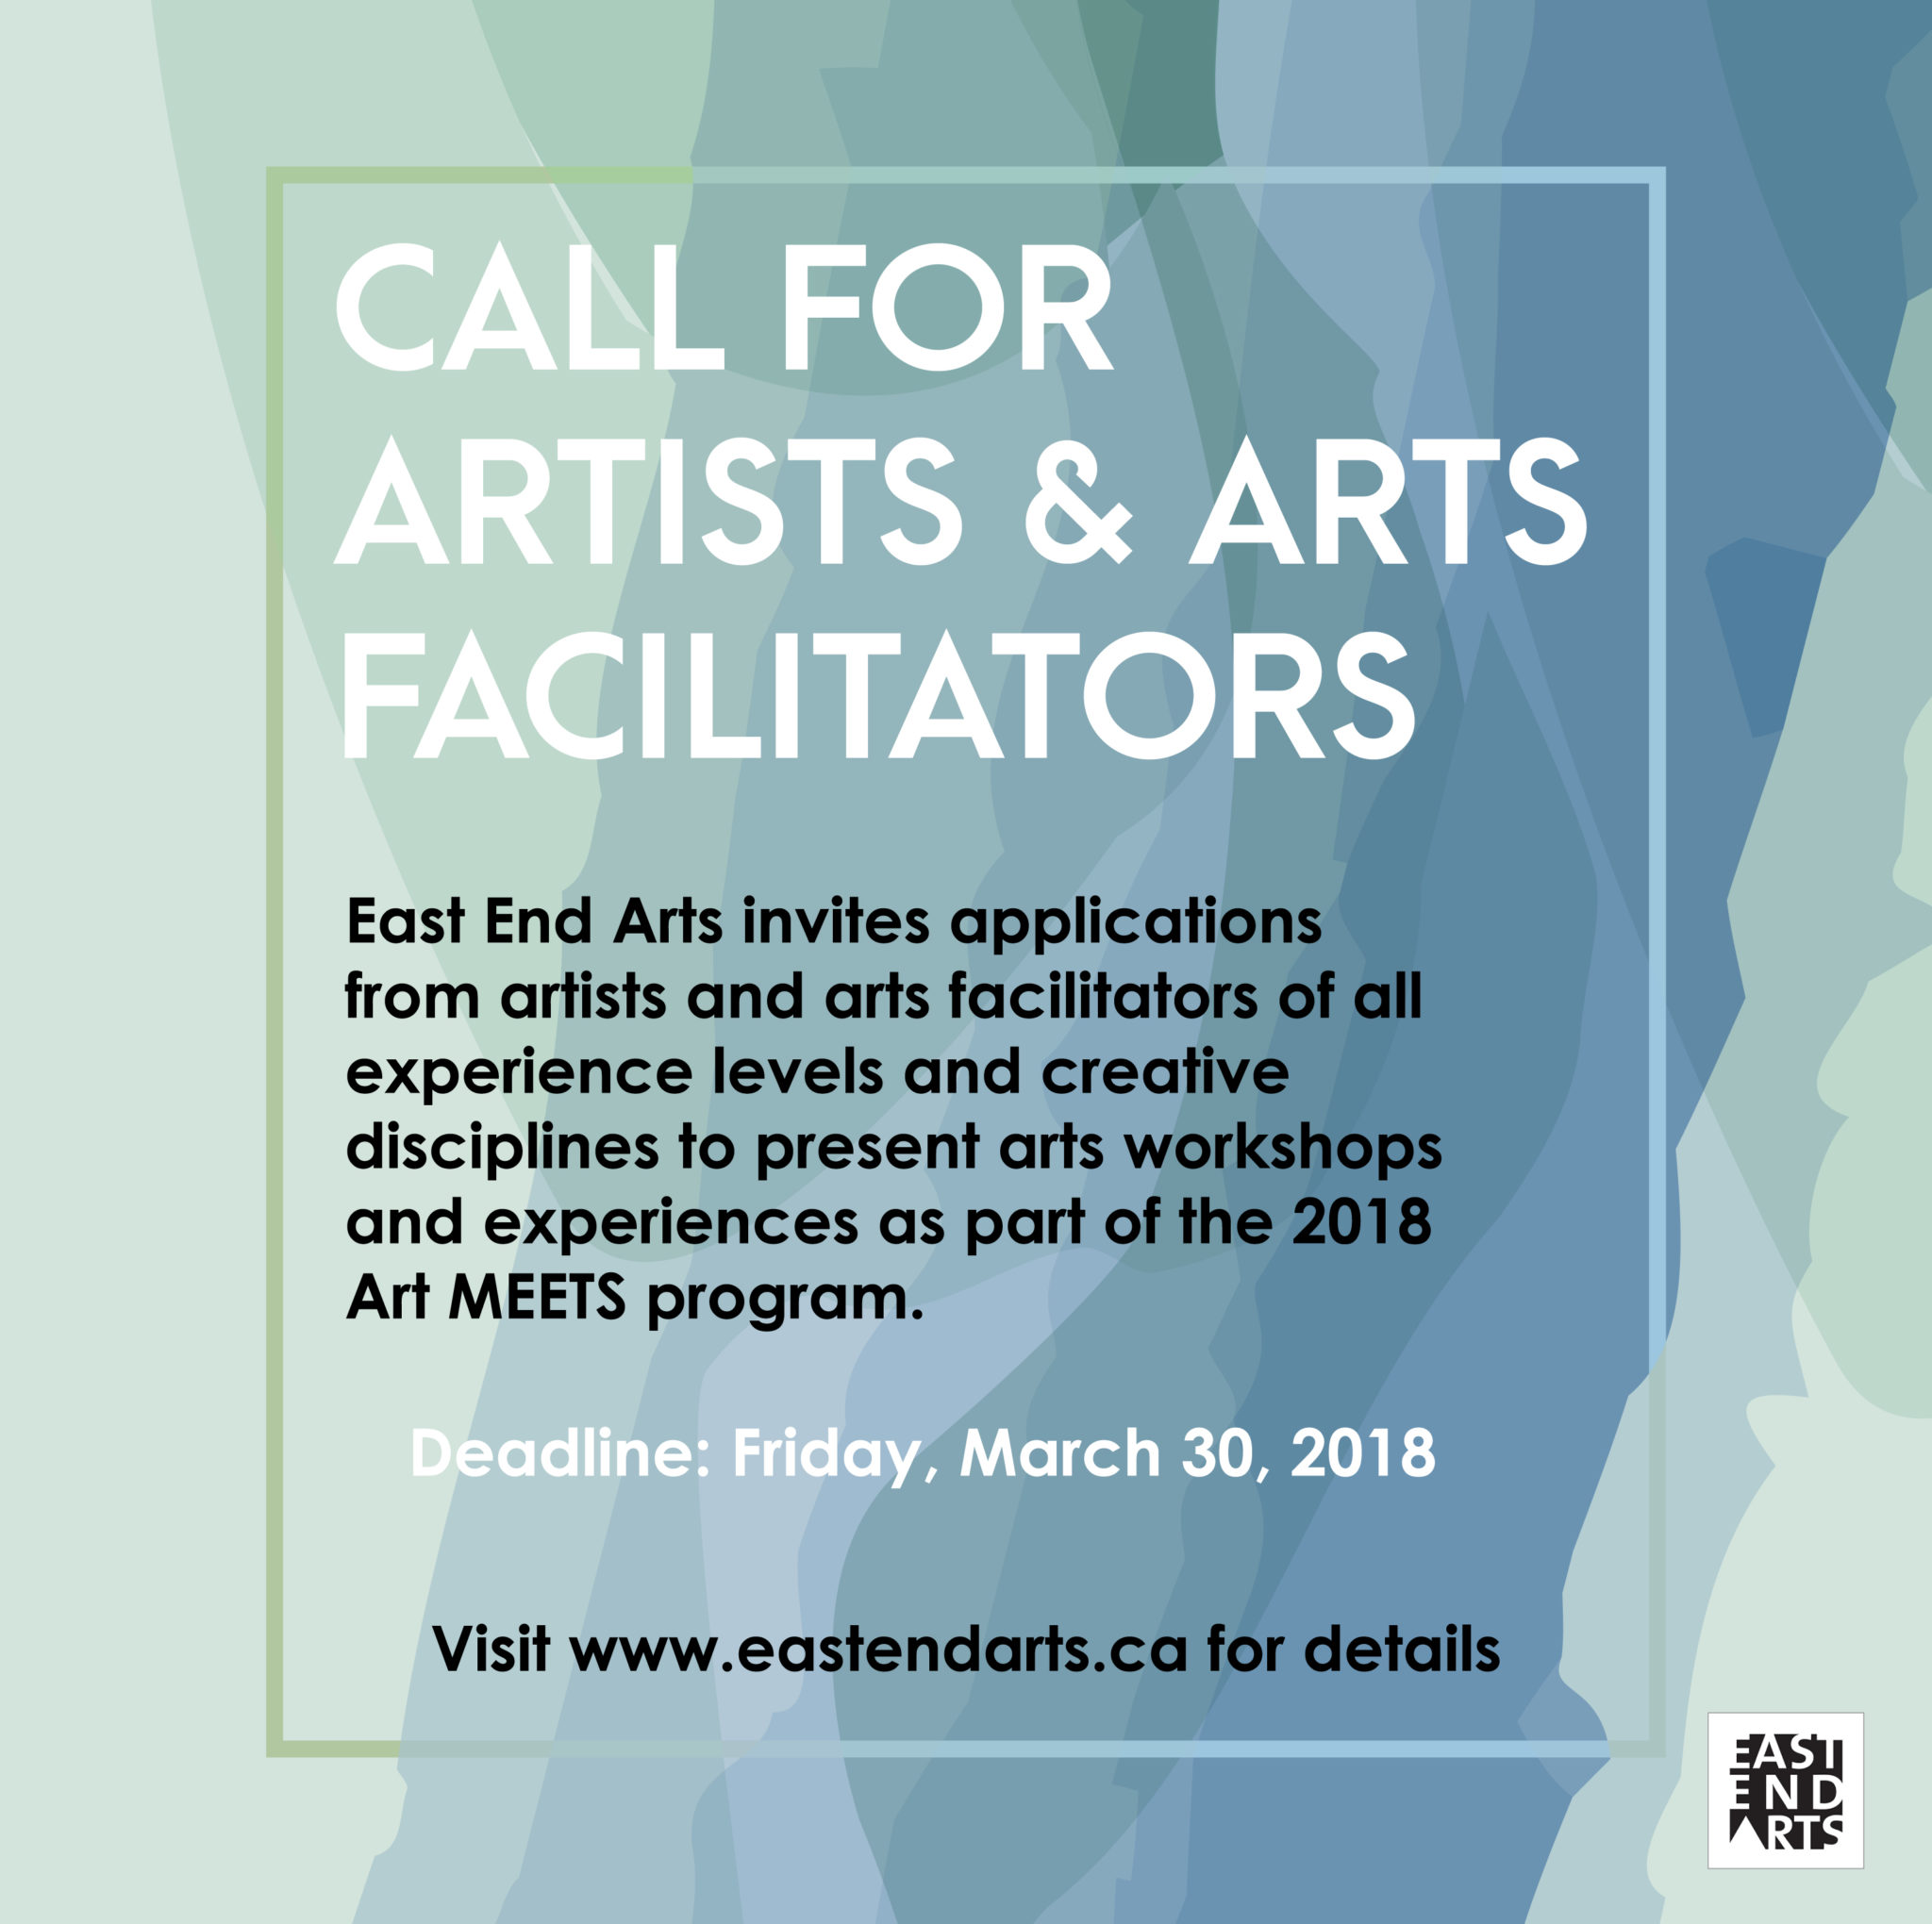 Art MEETS 2018: Call for Artists - East End Arts